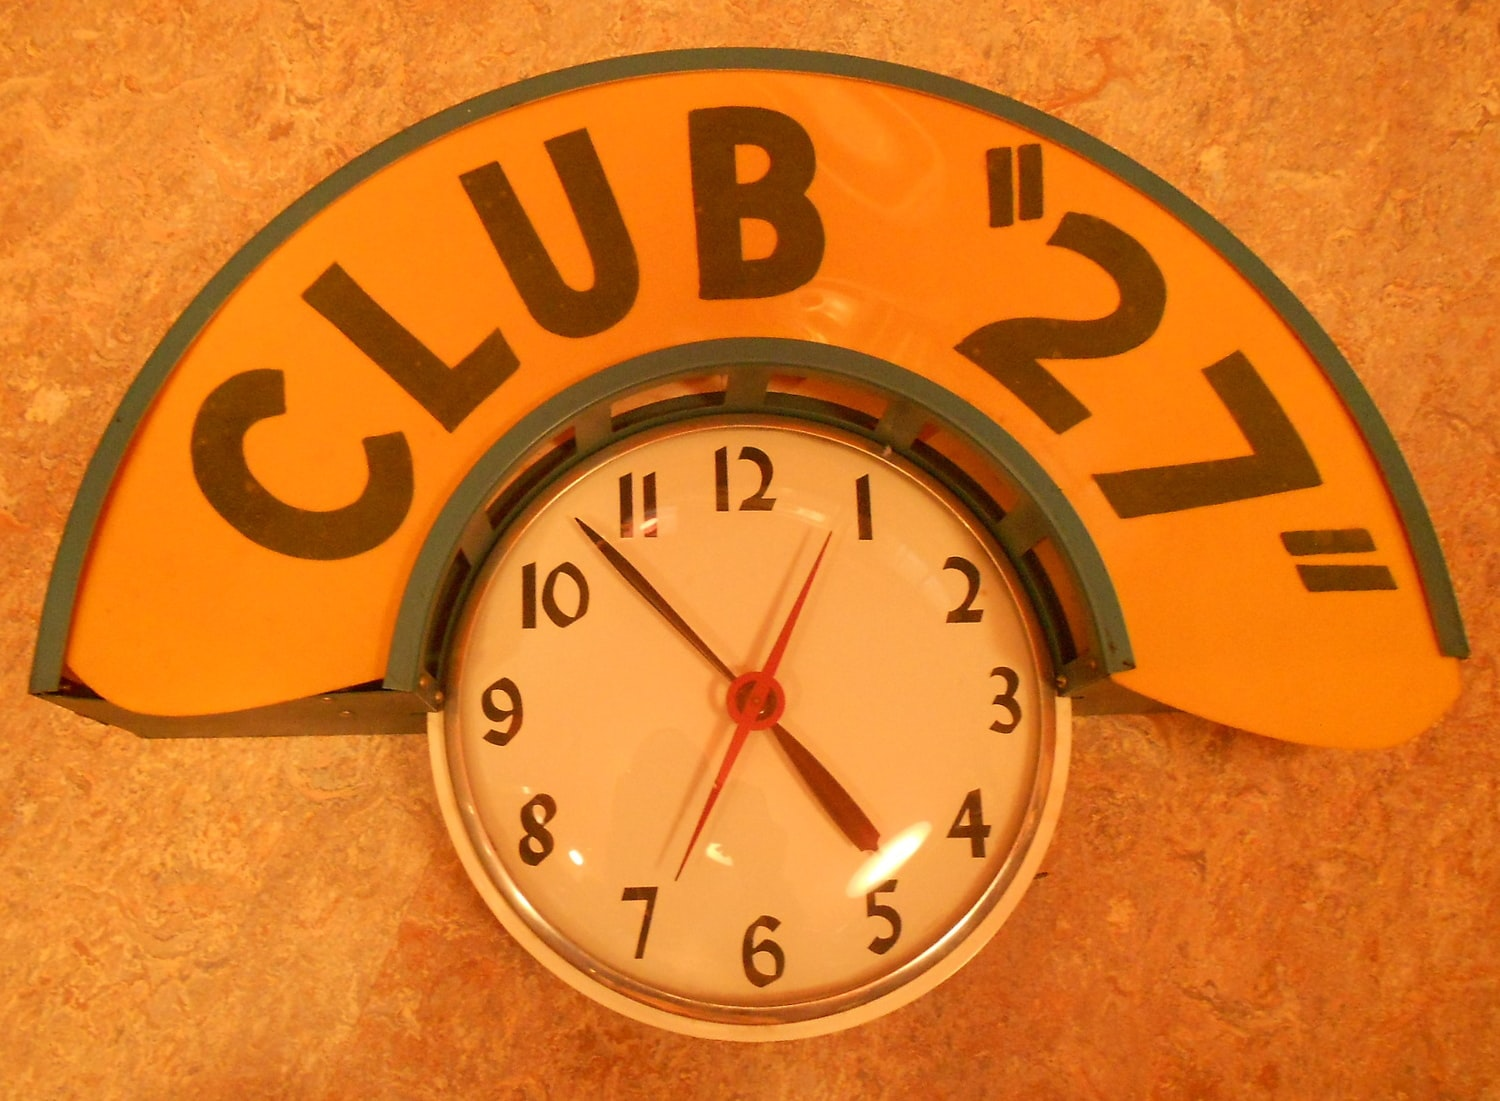 here at hodinkee hq there are a few vintage wall clocks adorning our hallowed halls we love em and you can find some really really funky old clocks for